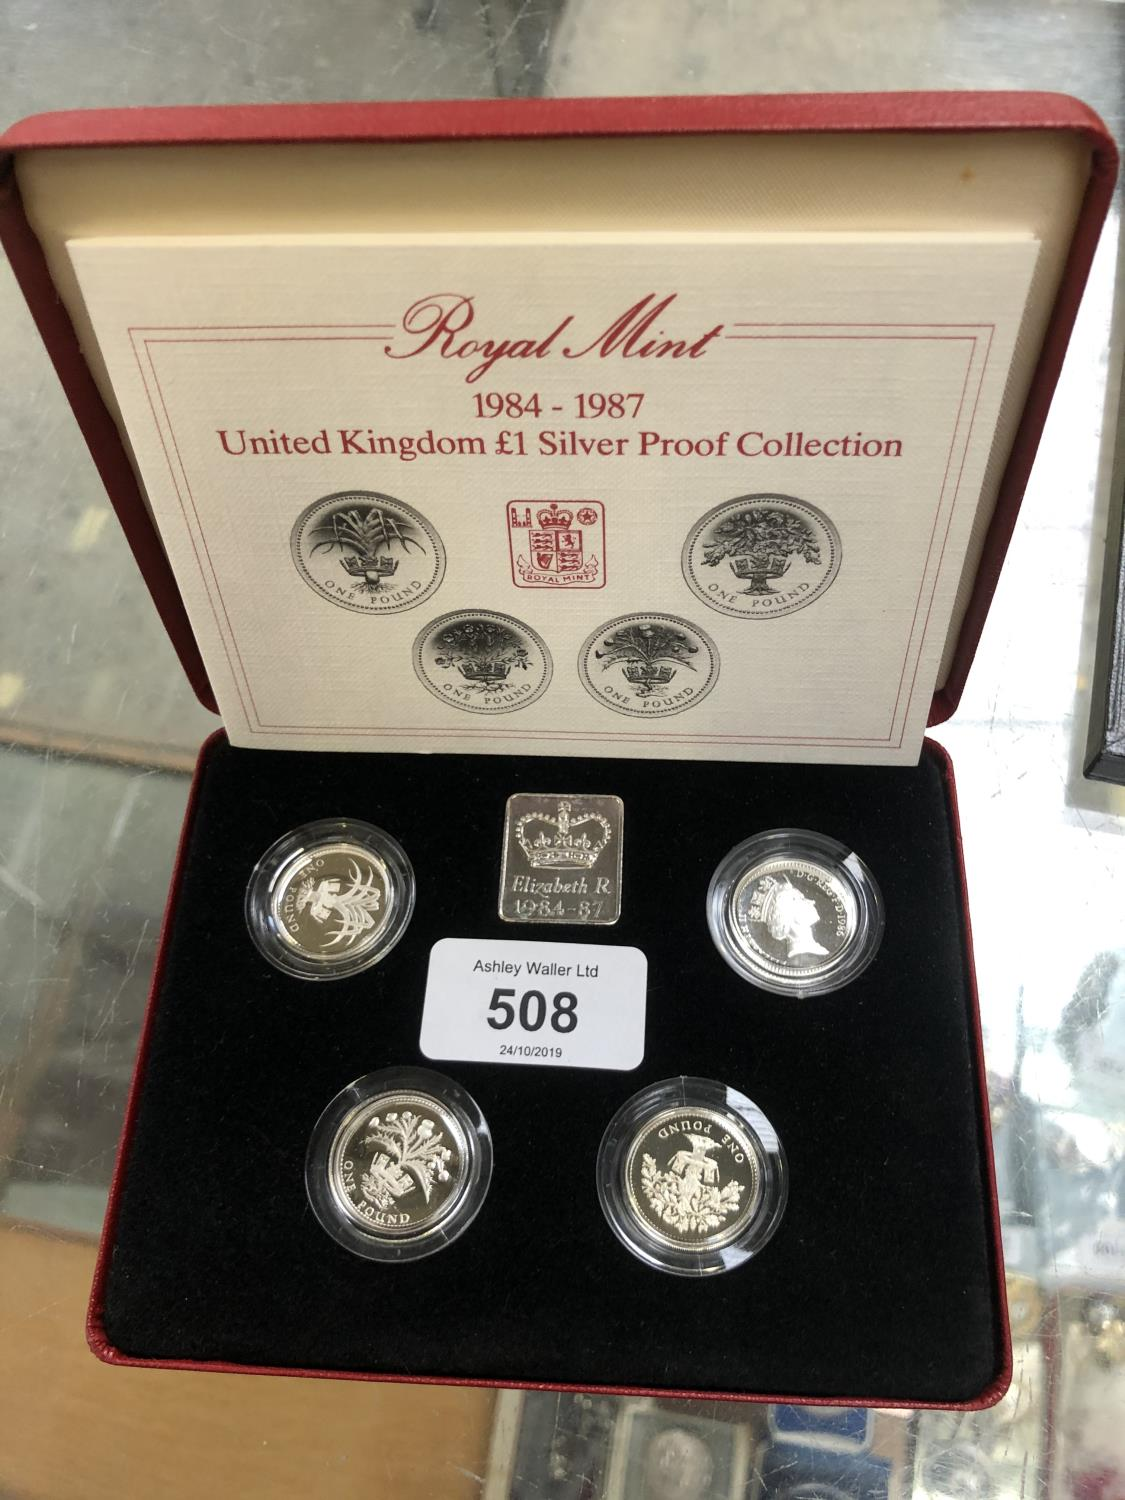 Lot 508 - A 1984-1987 UNITED KINGDOM £1 SILVER PROOF COIN SET